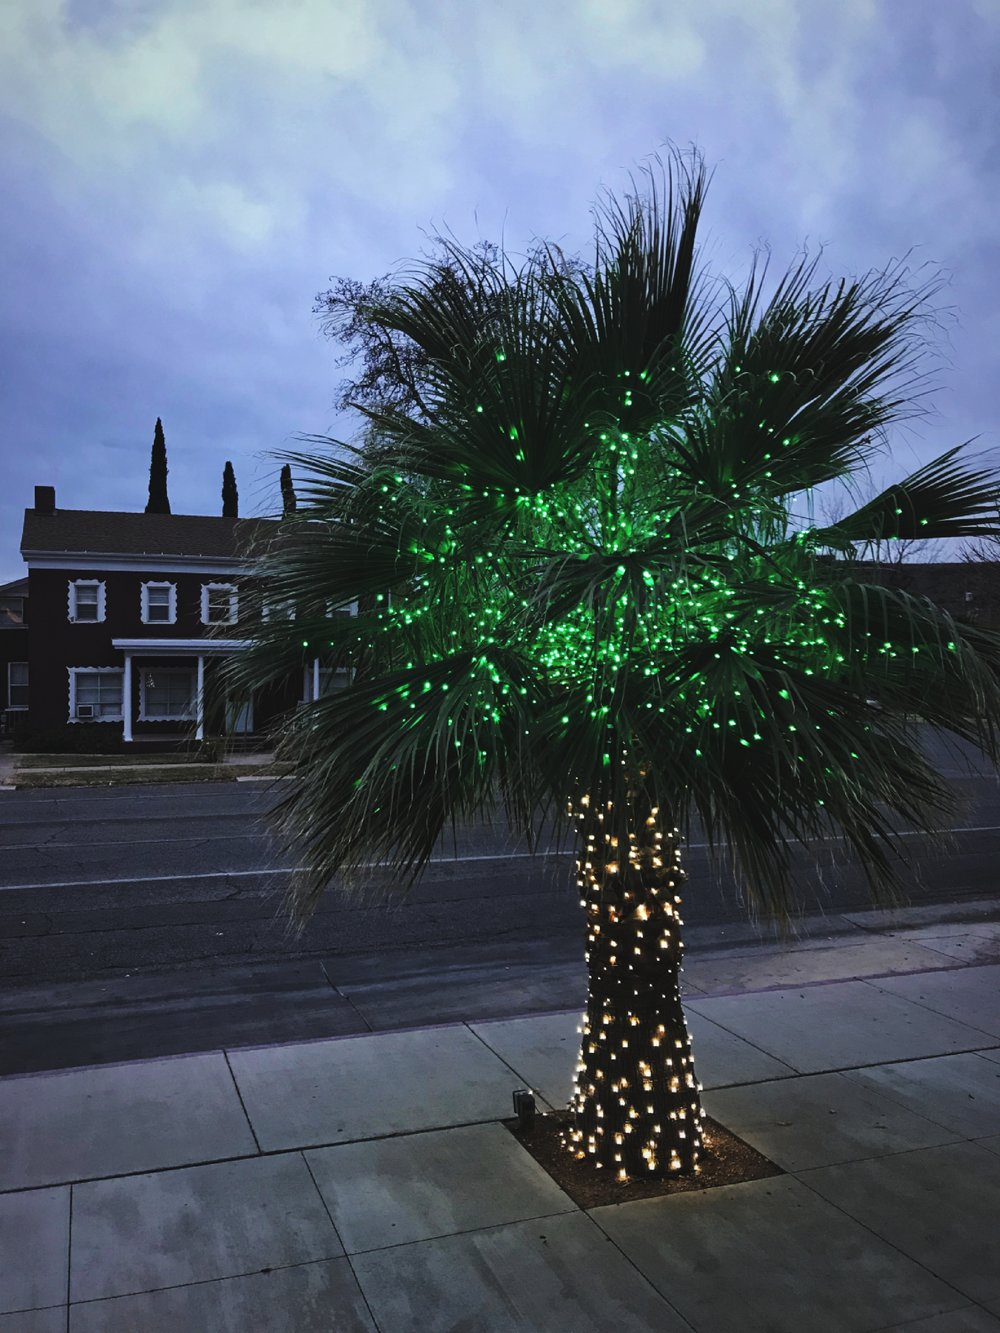 I won five dollars by submitting this photo of a decorated palm tree. It took 15 seconds.